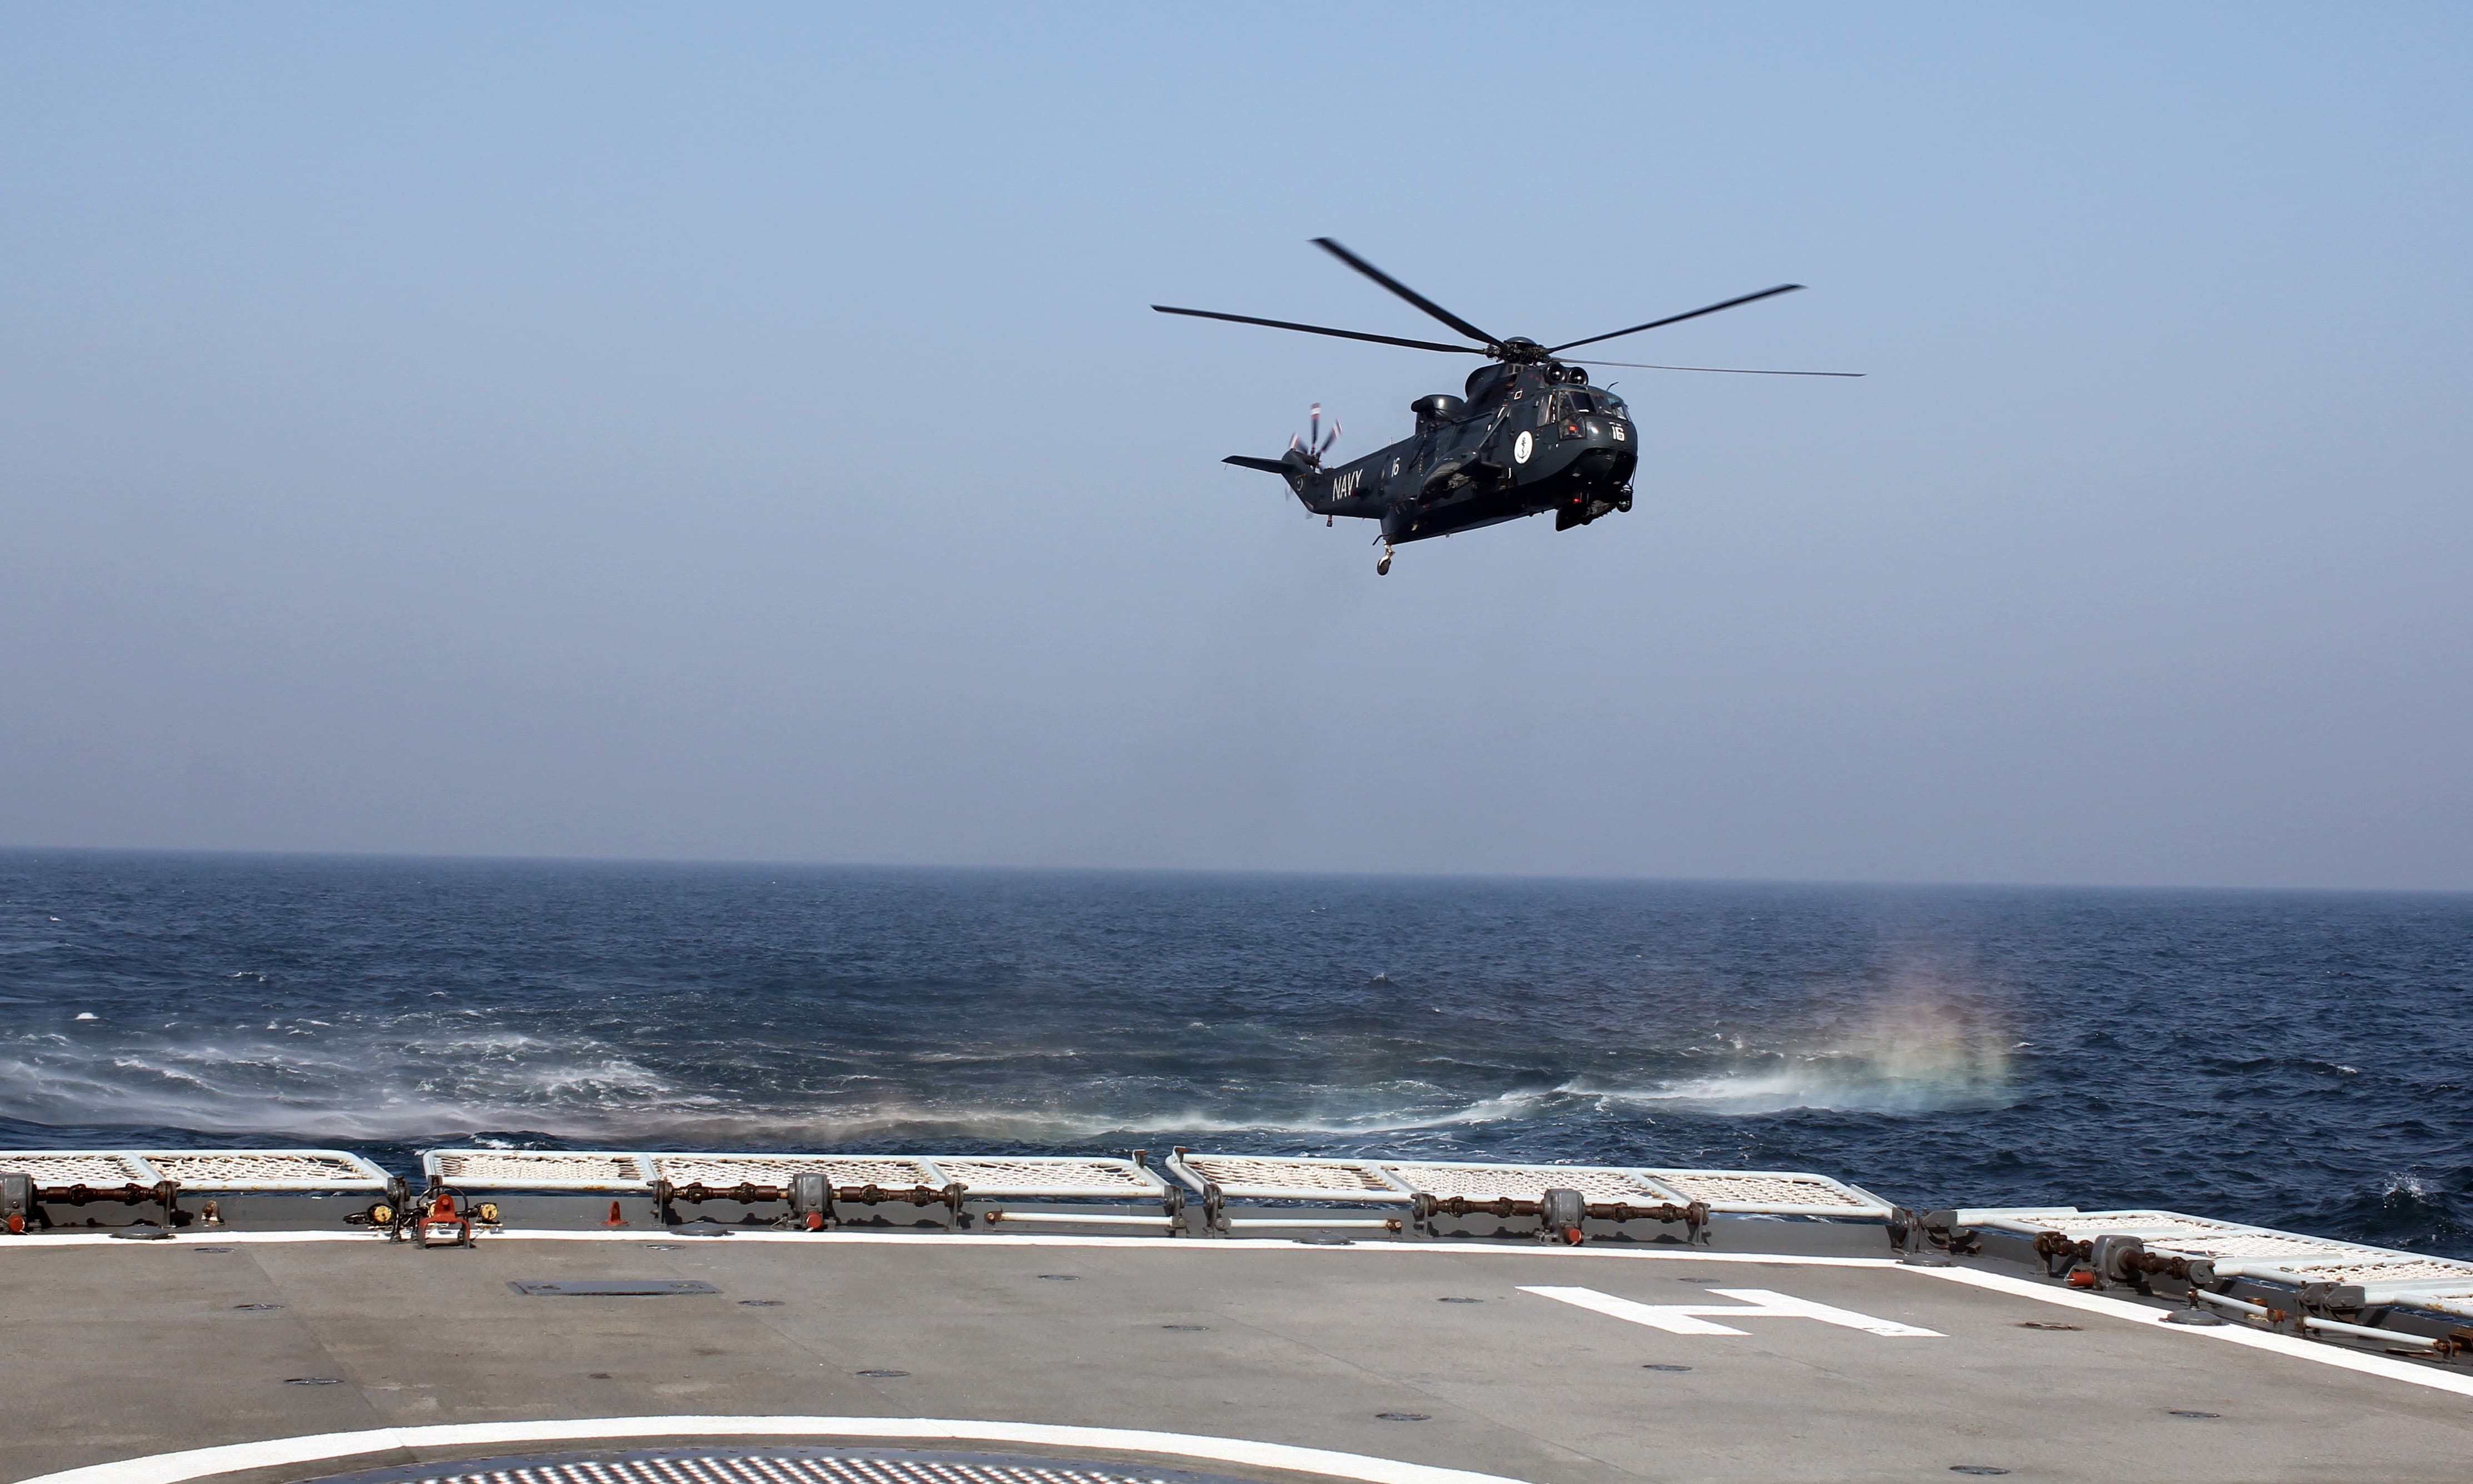 A Sea King helicopter is seen approaching a naval ship in the Arabian Sea. — Tauseef Mallick/File